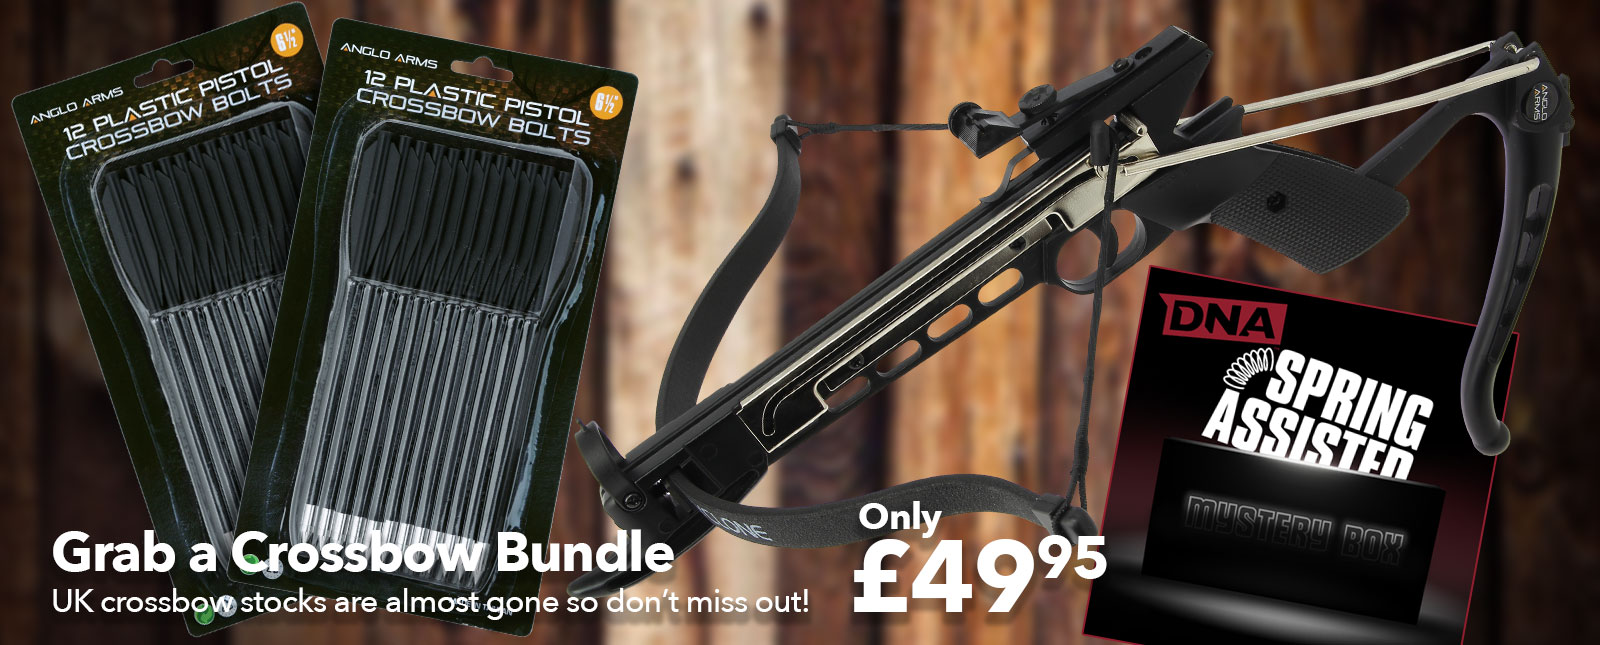 dna leisure cyclone crossbow pistol bundle